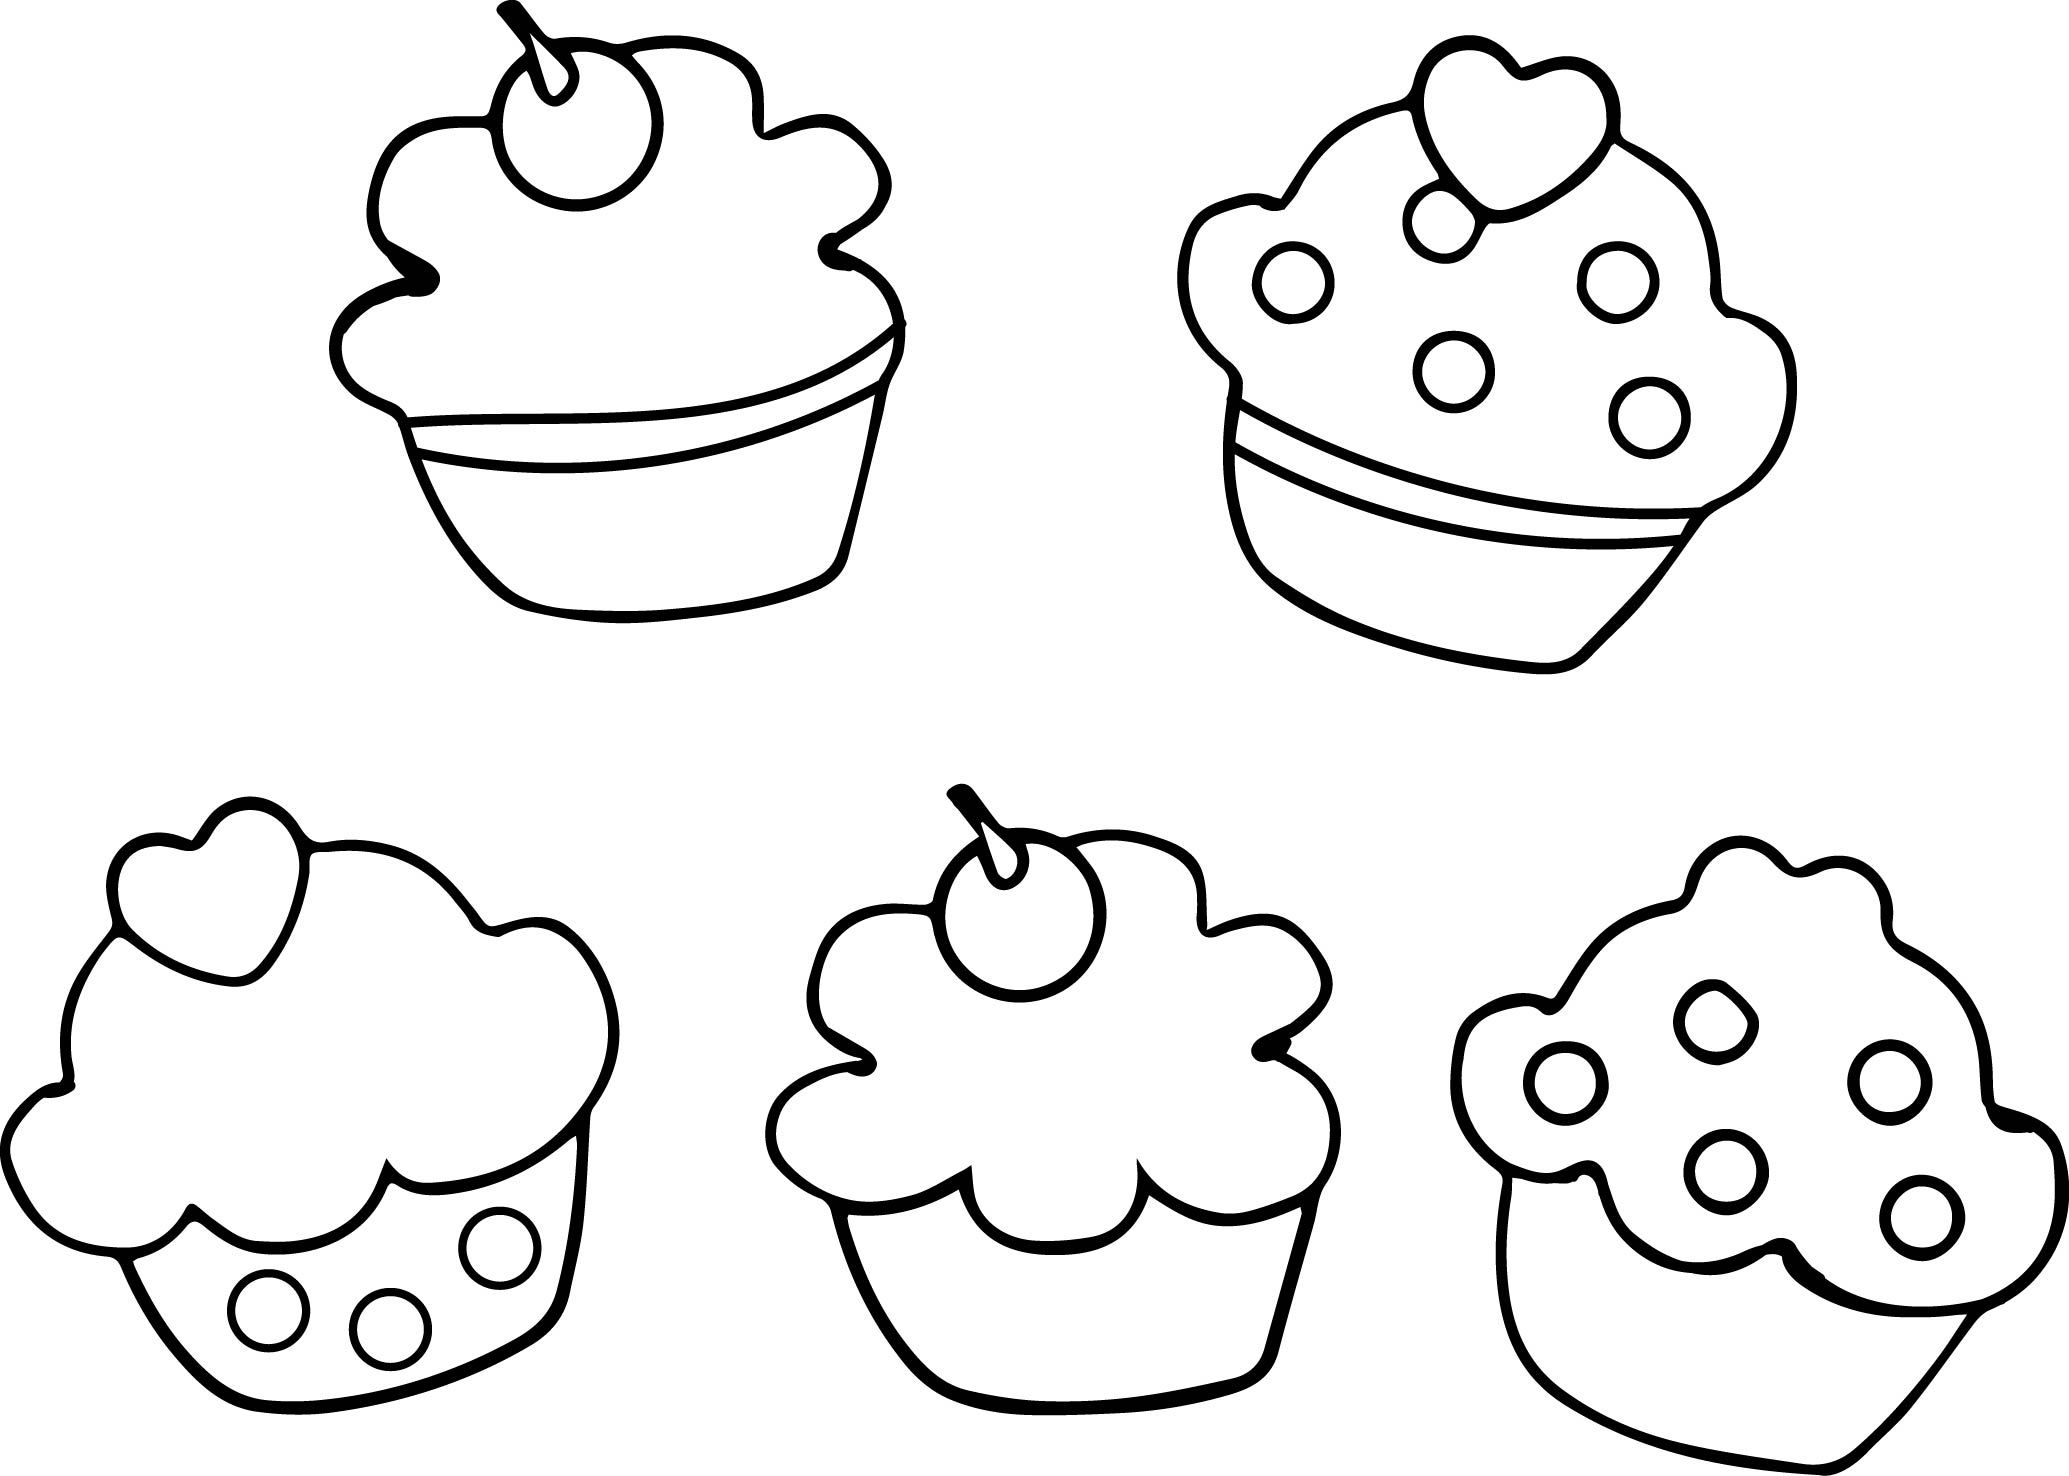 cupcakes_printable outline black white coloring page wecoloringpage - Outline Pictures For Coloring